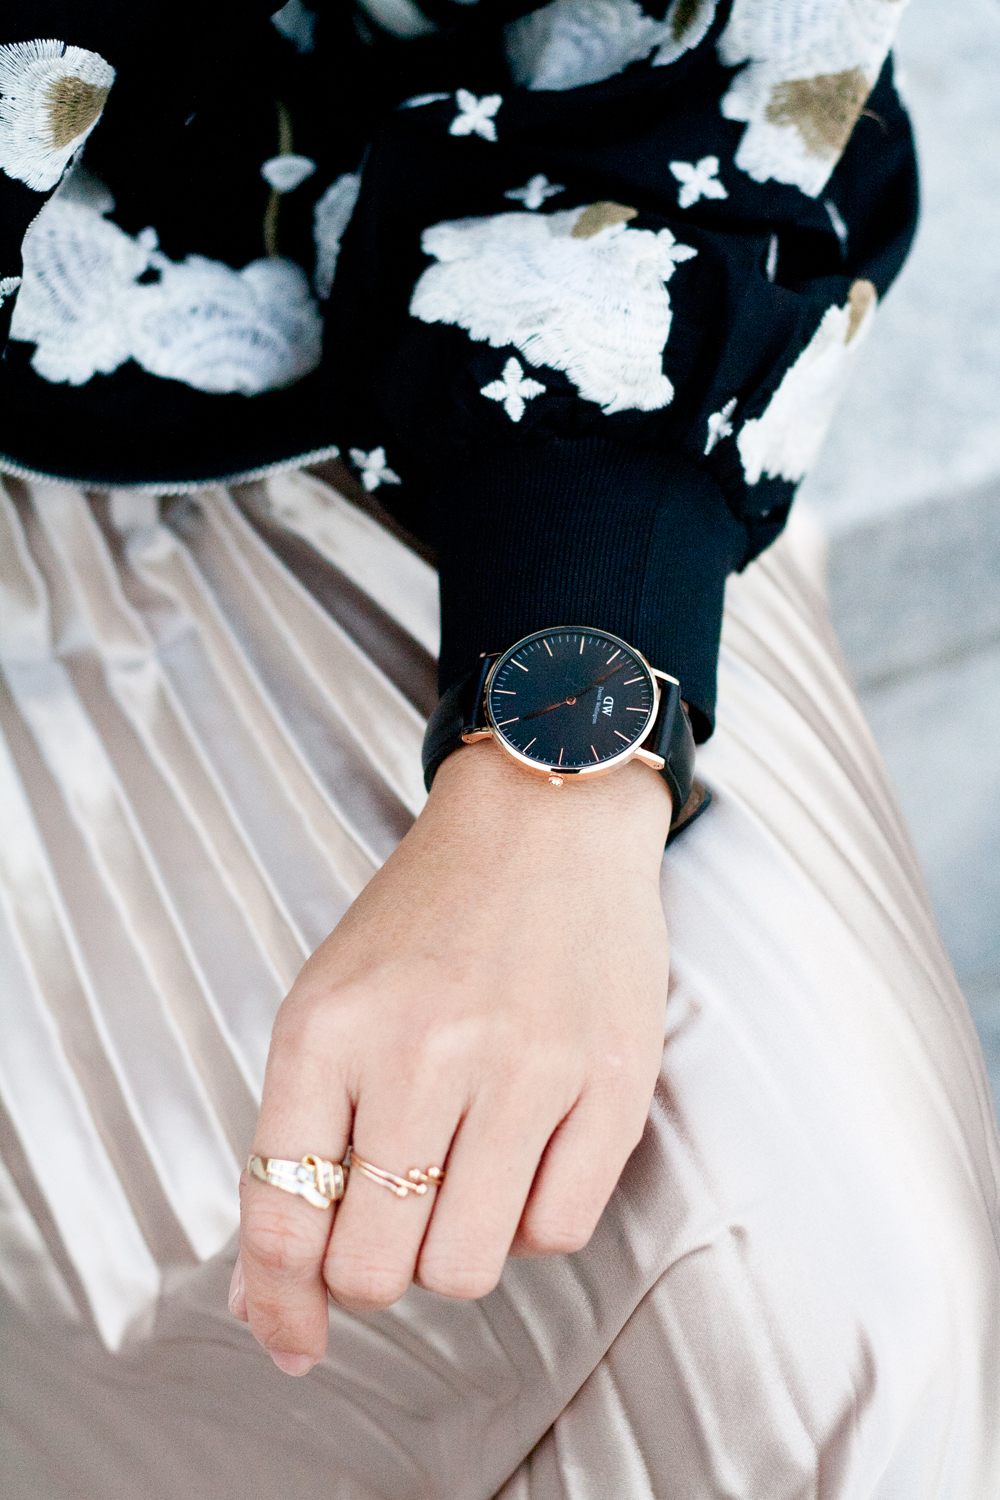 06newyear-gold-floral-embroidery-danielwellington-watch-sf-sanfrancisco-style-fashion